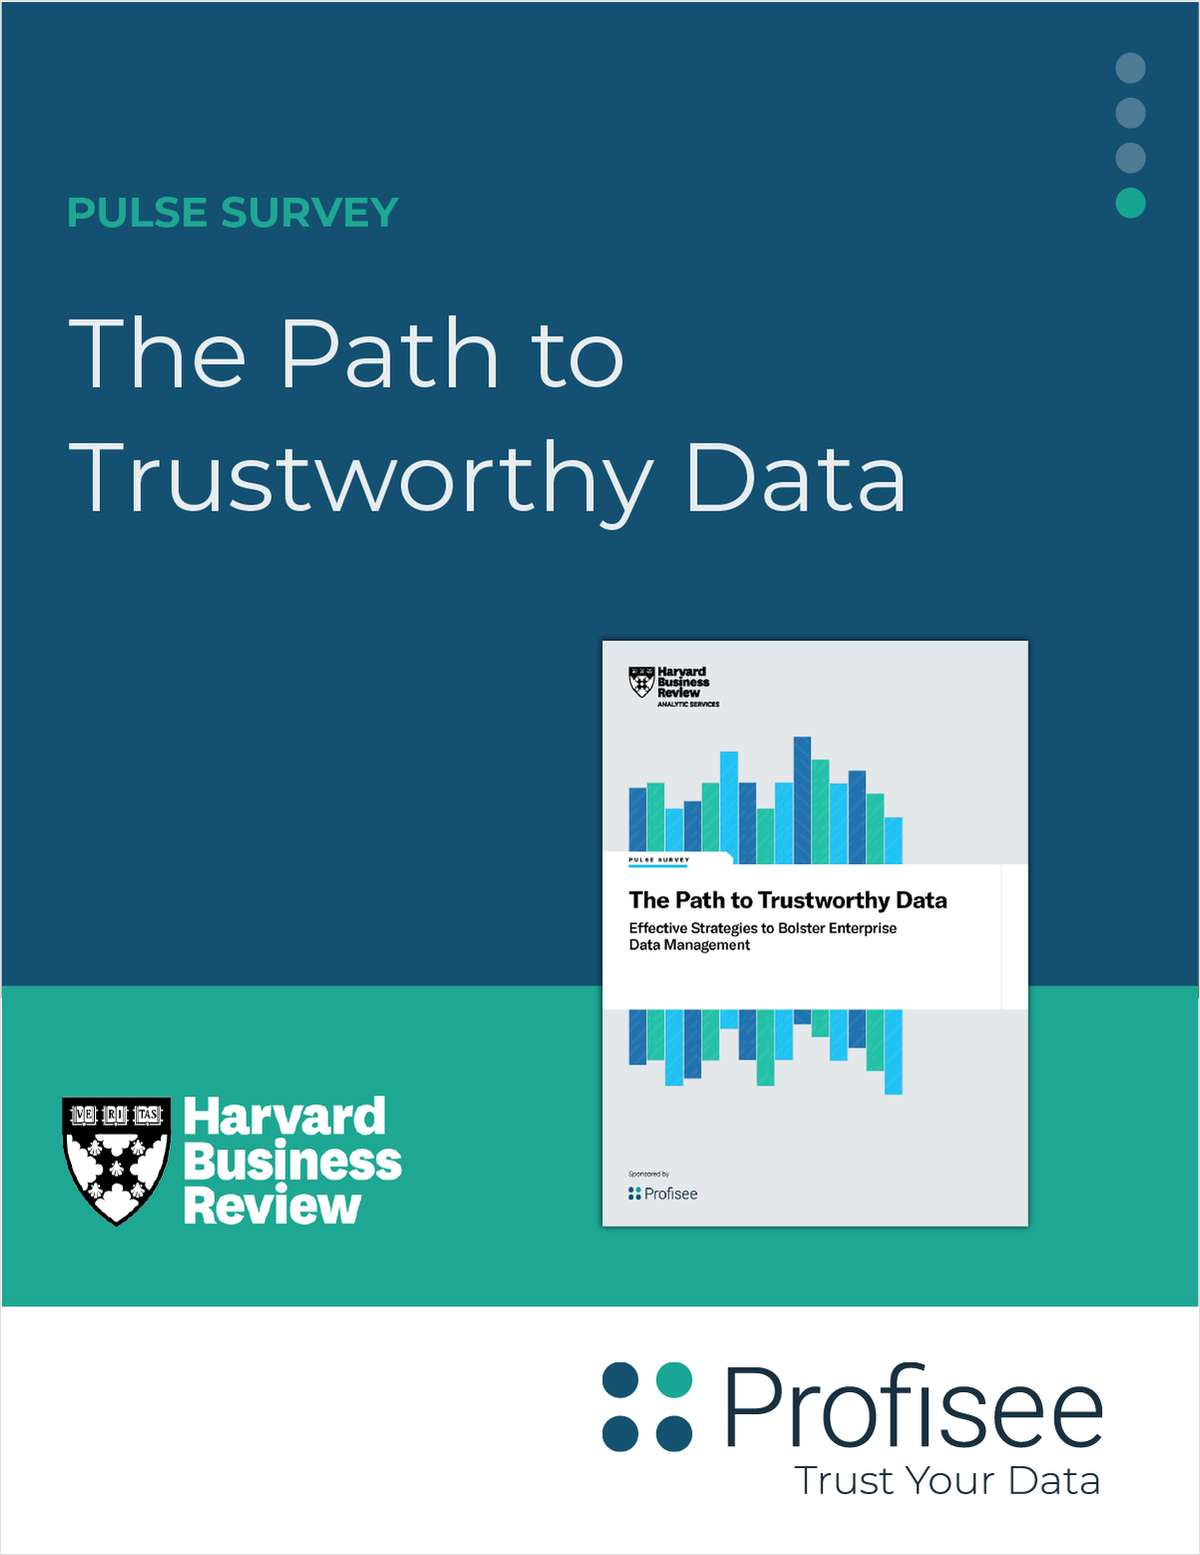 Harvard Business Review: The Path to Trustworthy Data